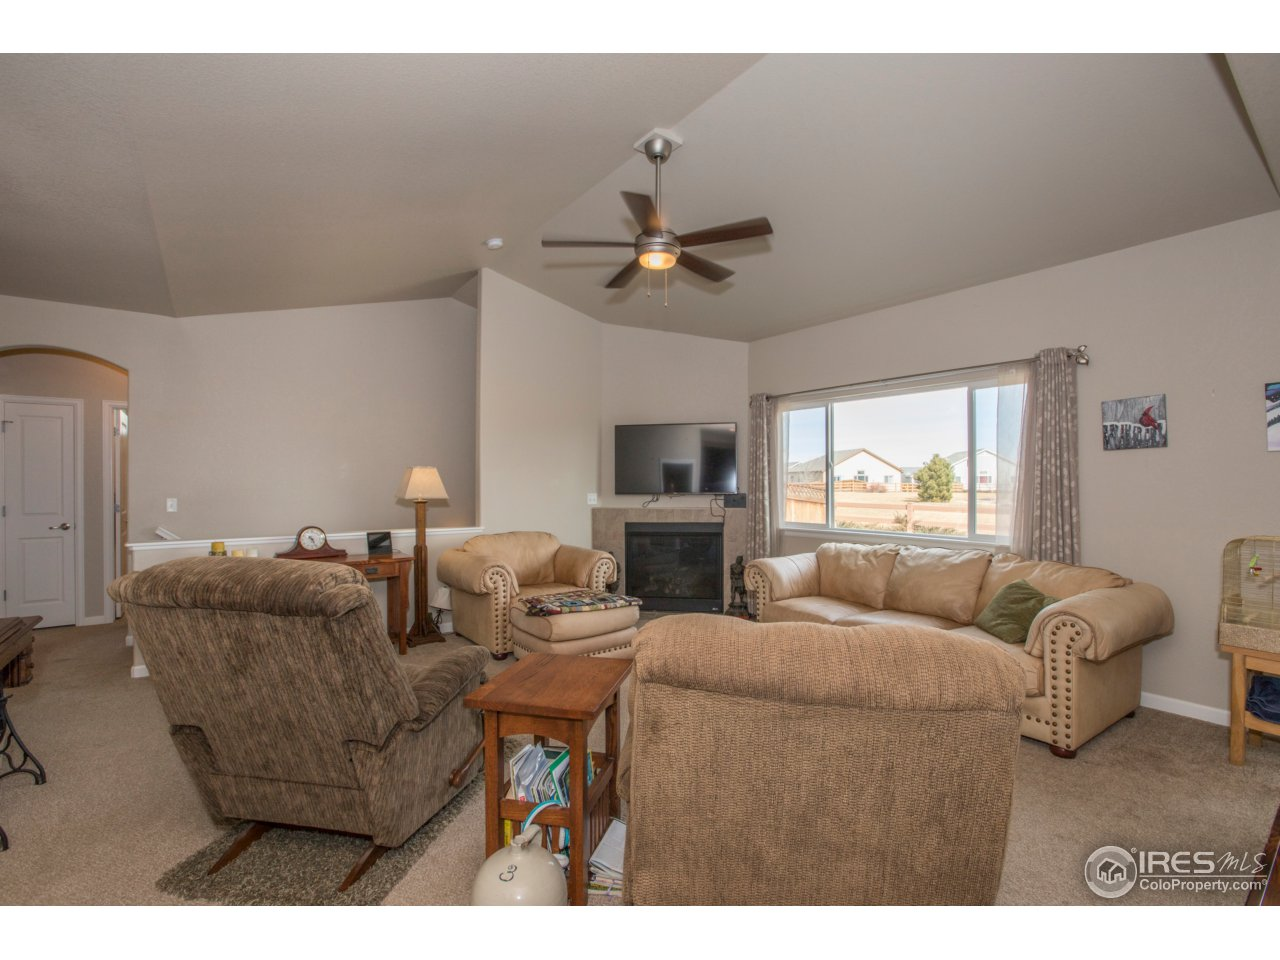 The living area could be an entertainer's dream